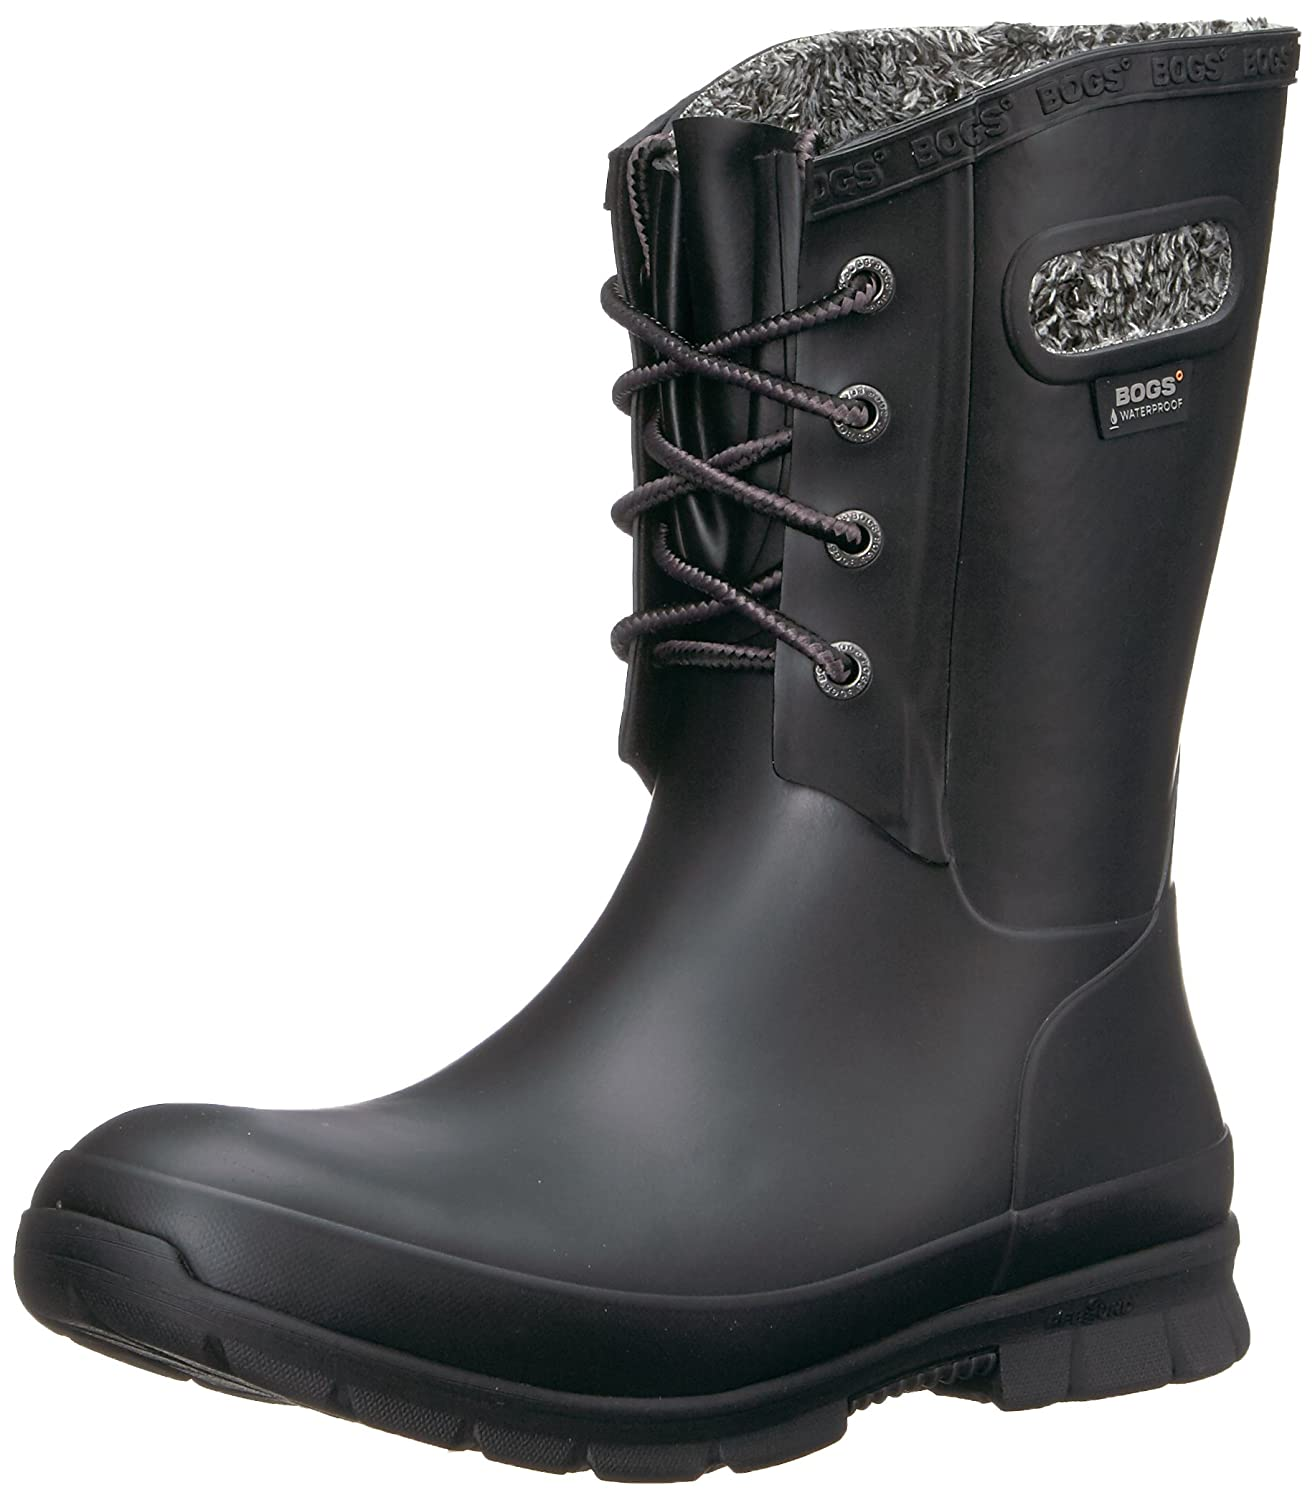 Black Bogs Women's Amanda Plush Snow Boot